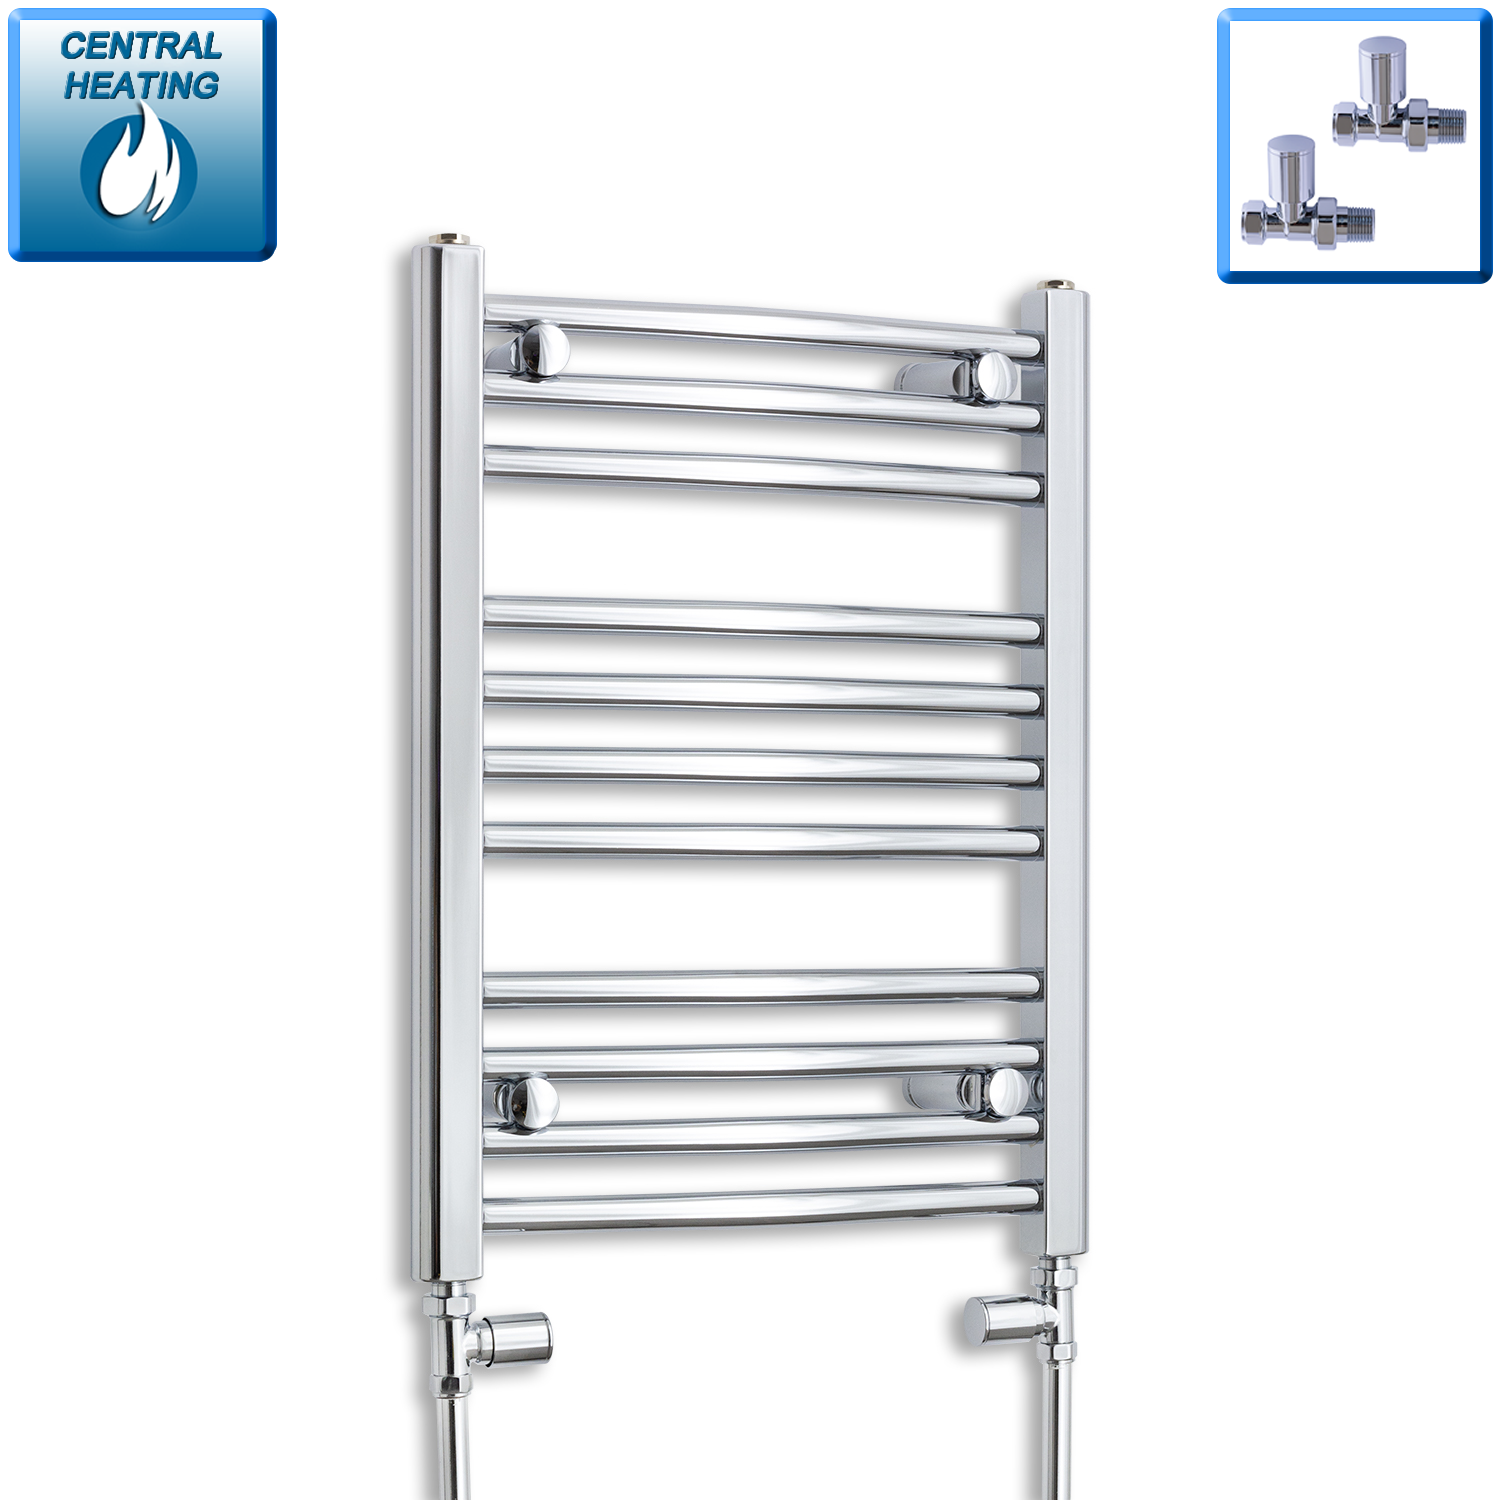 450mm Wide 600mm High Chrome Towel Rail Radiator With Straight Valve